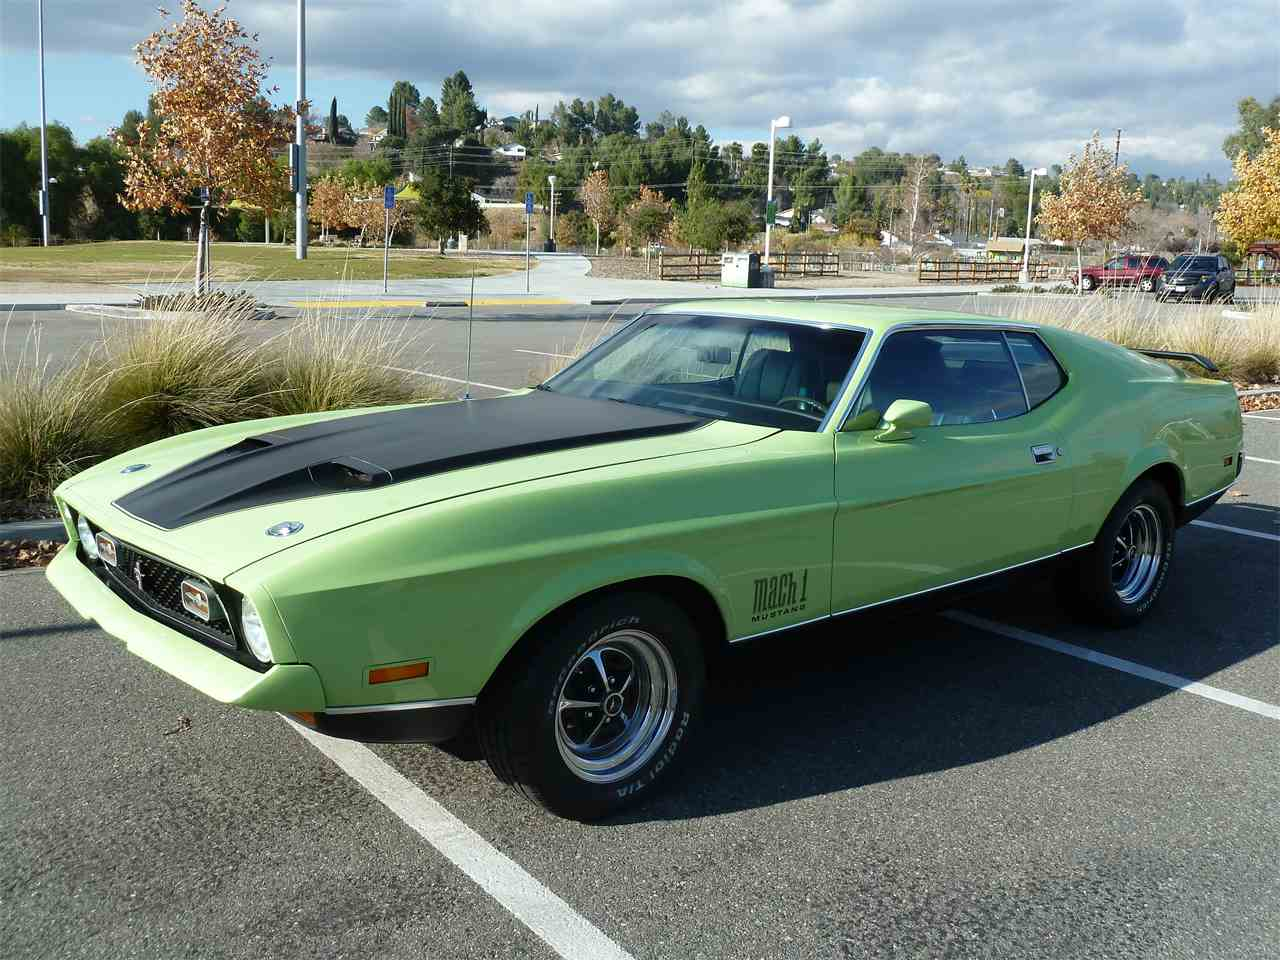 1971 Ford Mustang Mach 1 for Sale - CC-999117